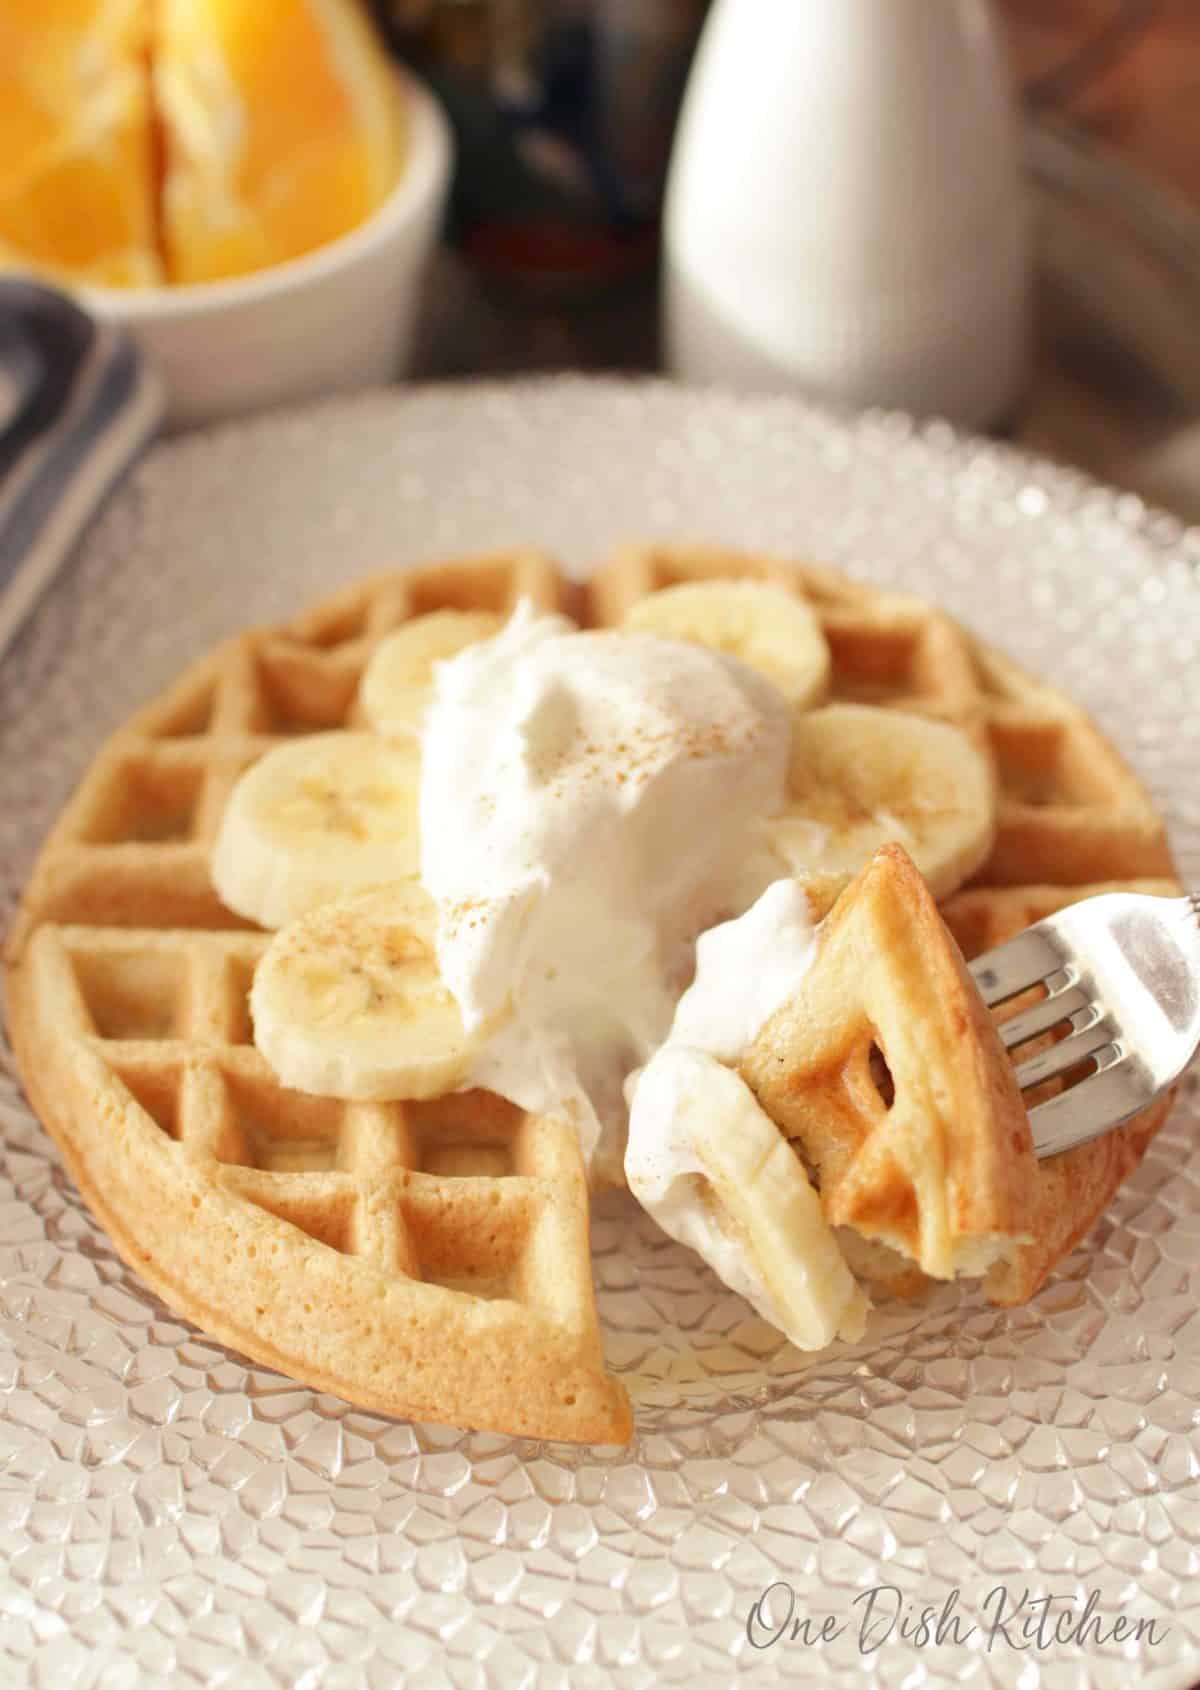 A forkful of waffle with whipped cream, banana slices, and dusted with cinnamon on a large plate